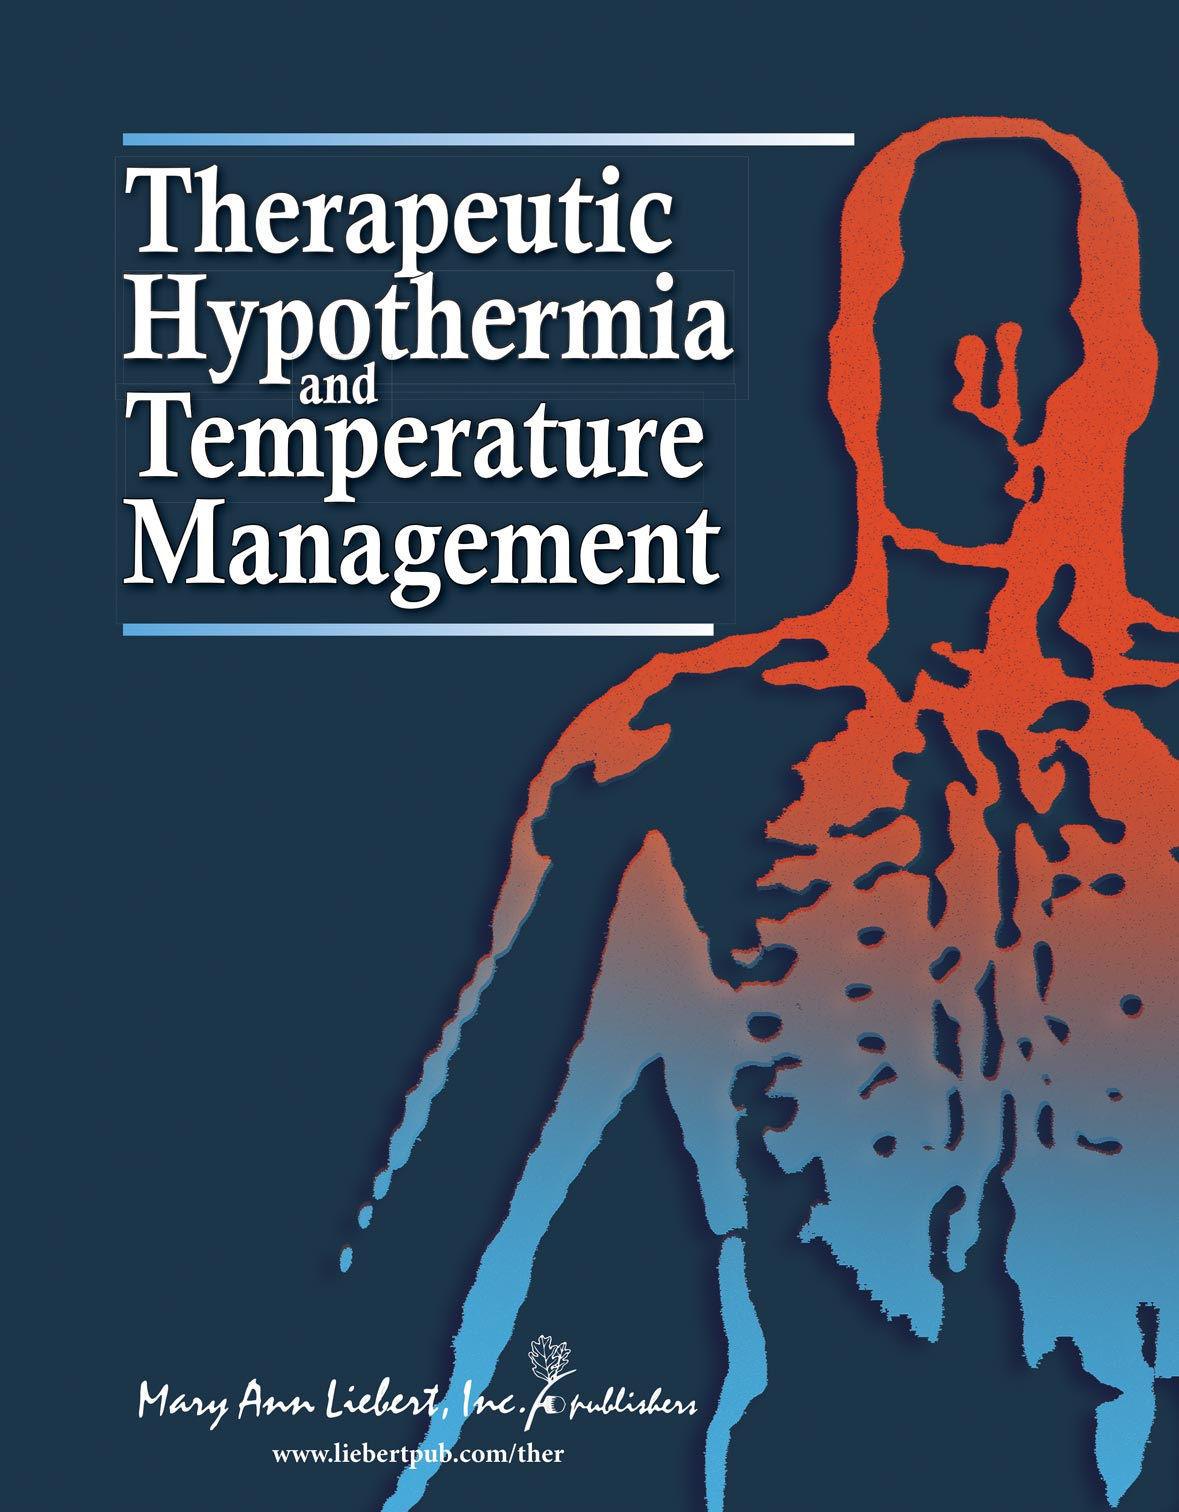 Hypothermia Identifies Dynamin as a Potential Therapeutic